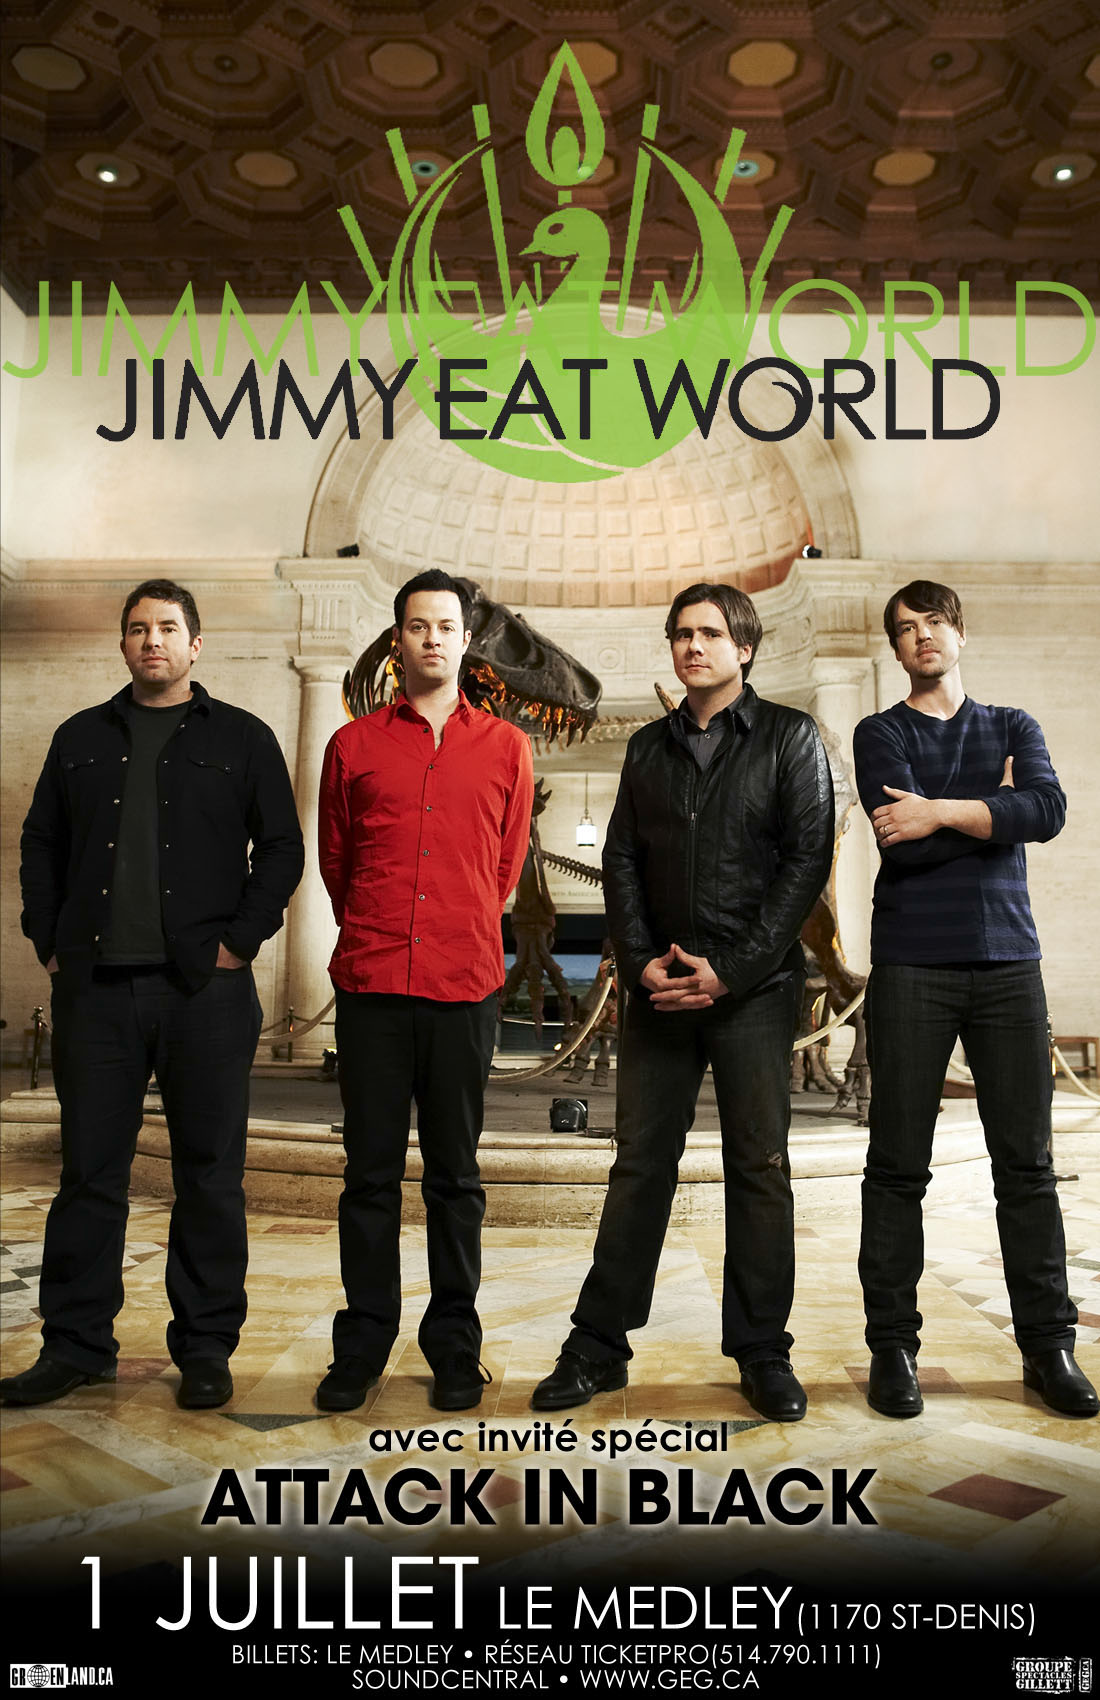 JimmyEatWorld(07.01.08)